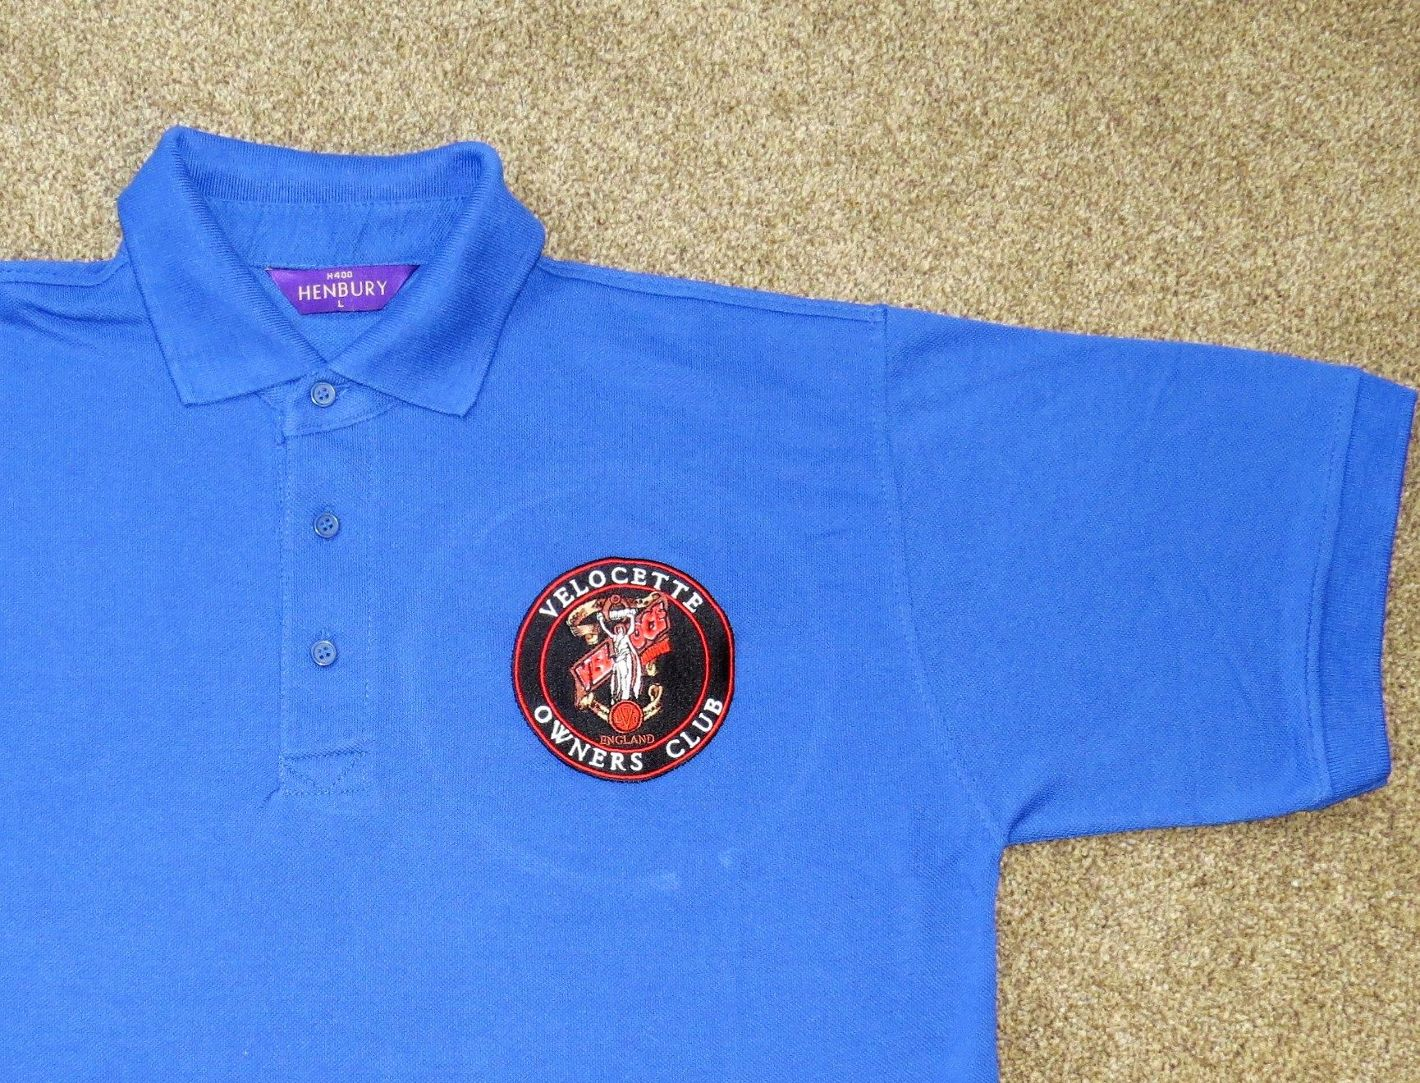 Velocette Owners Club Naked Lady Polo Shirt